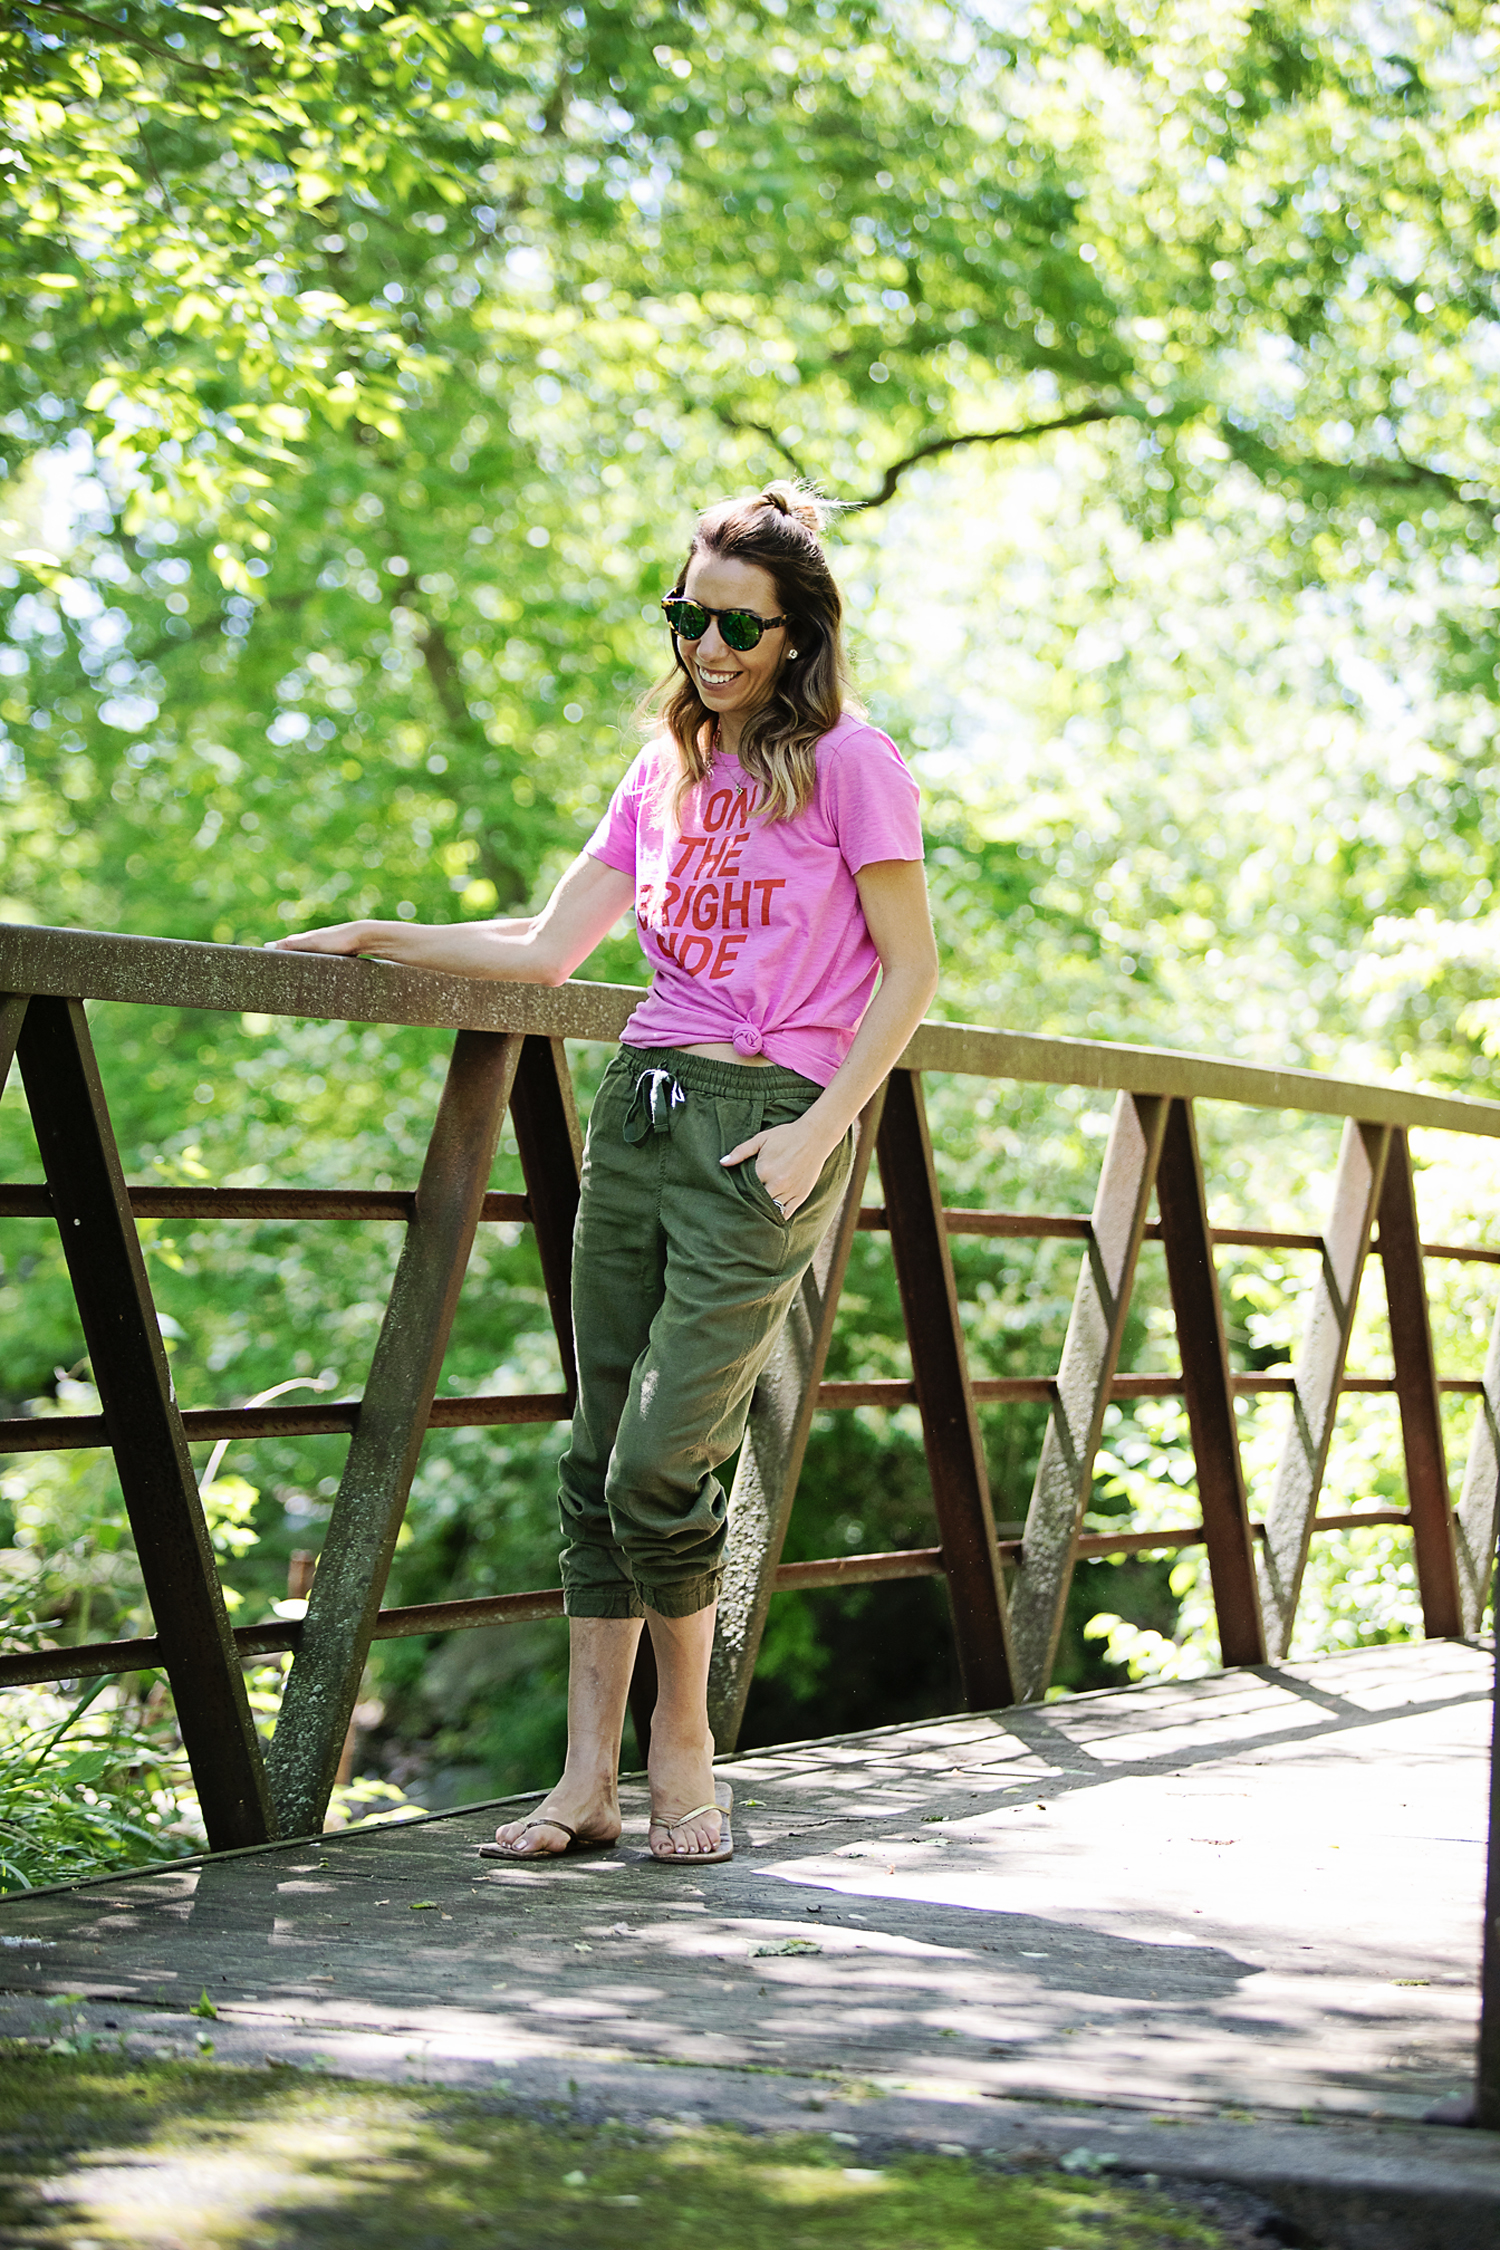 The motherchic wearing J.crew seaside joggers and graphic tee